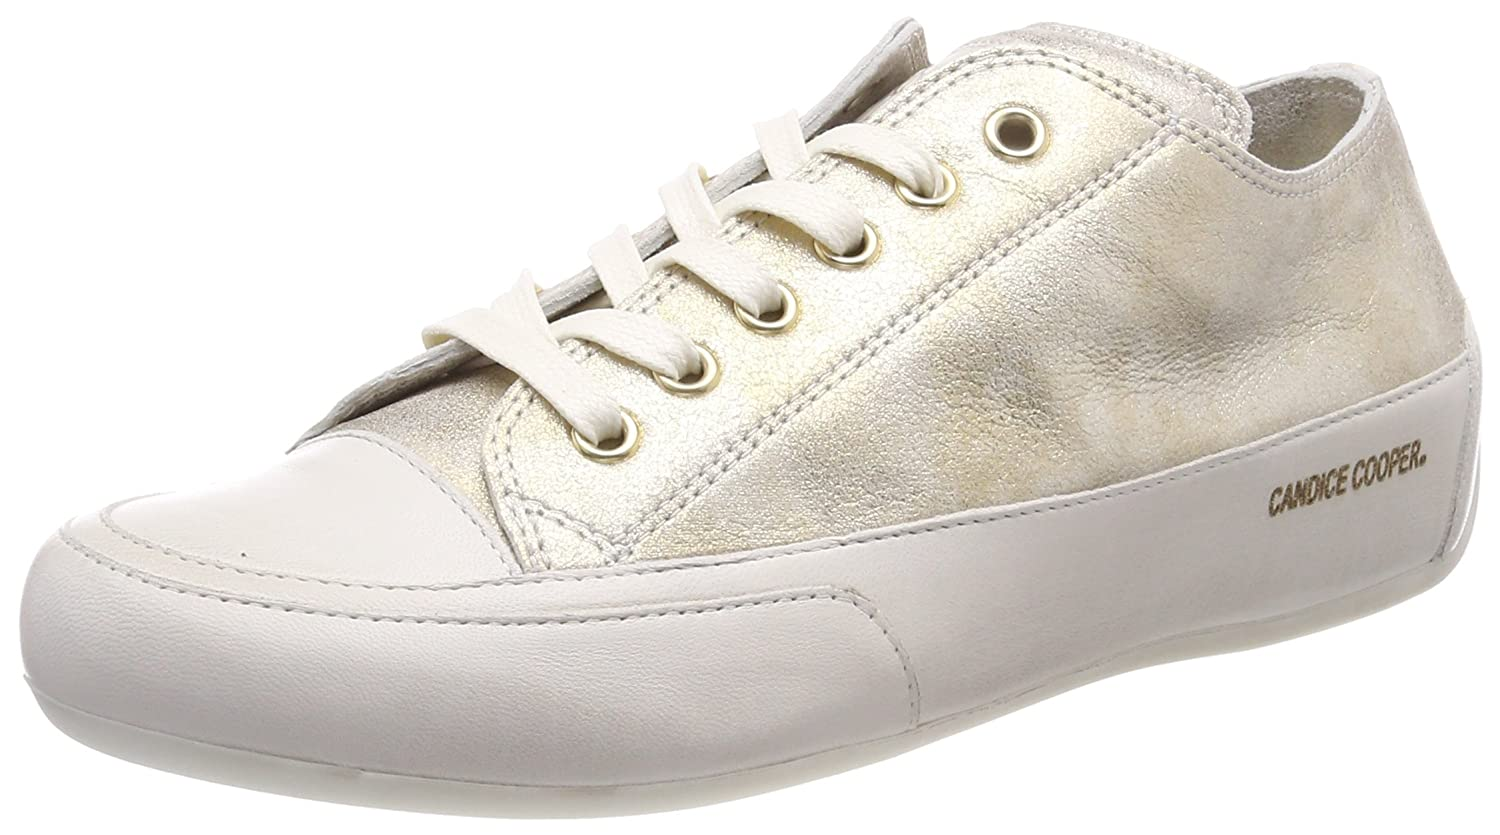 Candice Passion Cooper, Chaussures Femmes, Silber (argento), 38 Eu